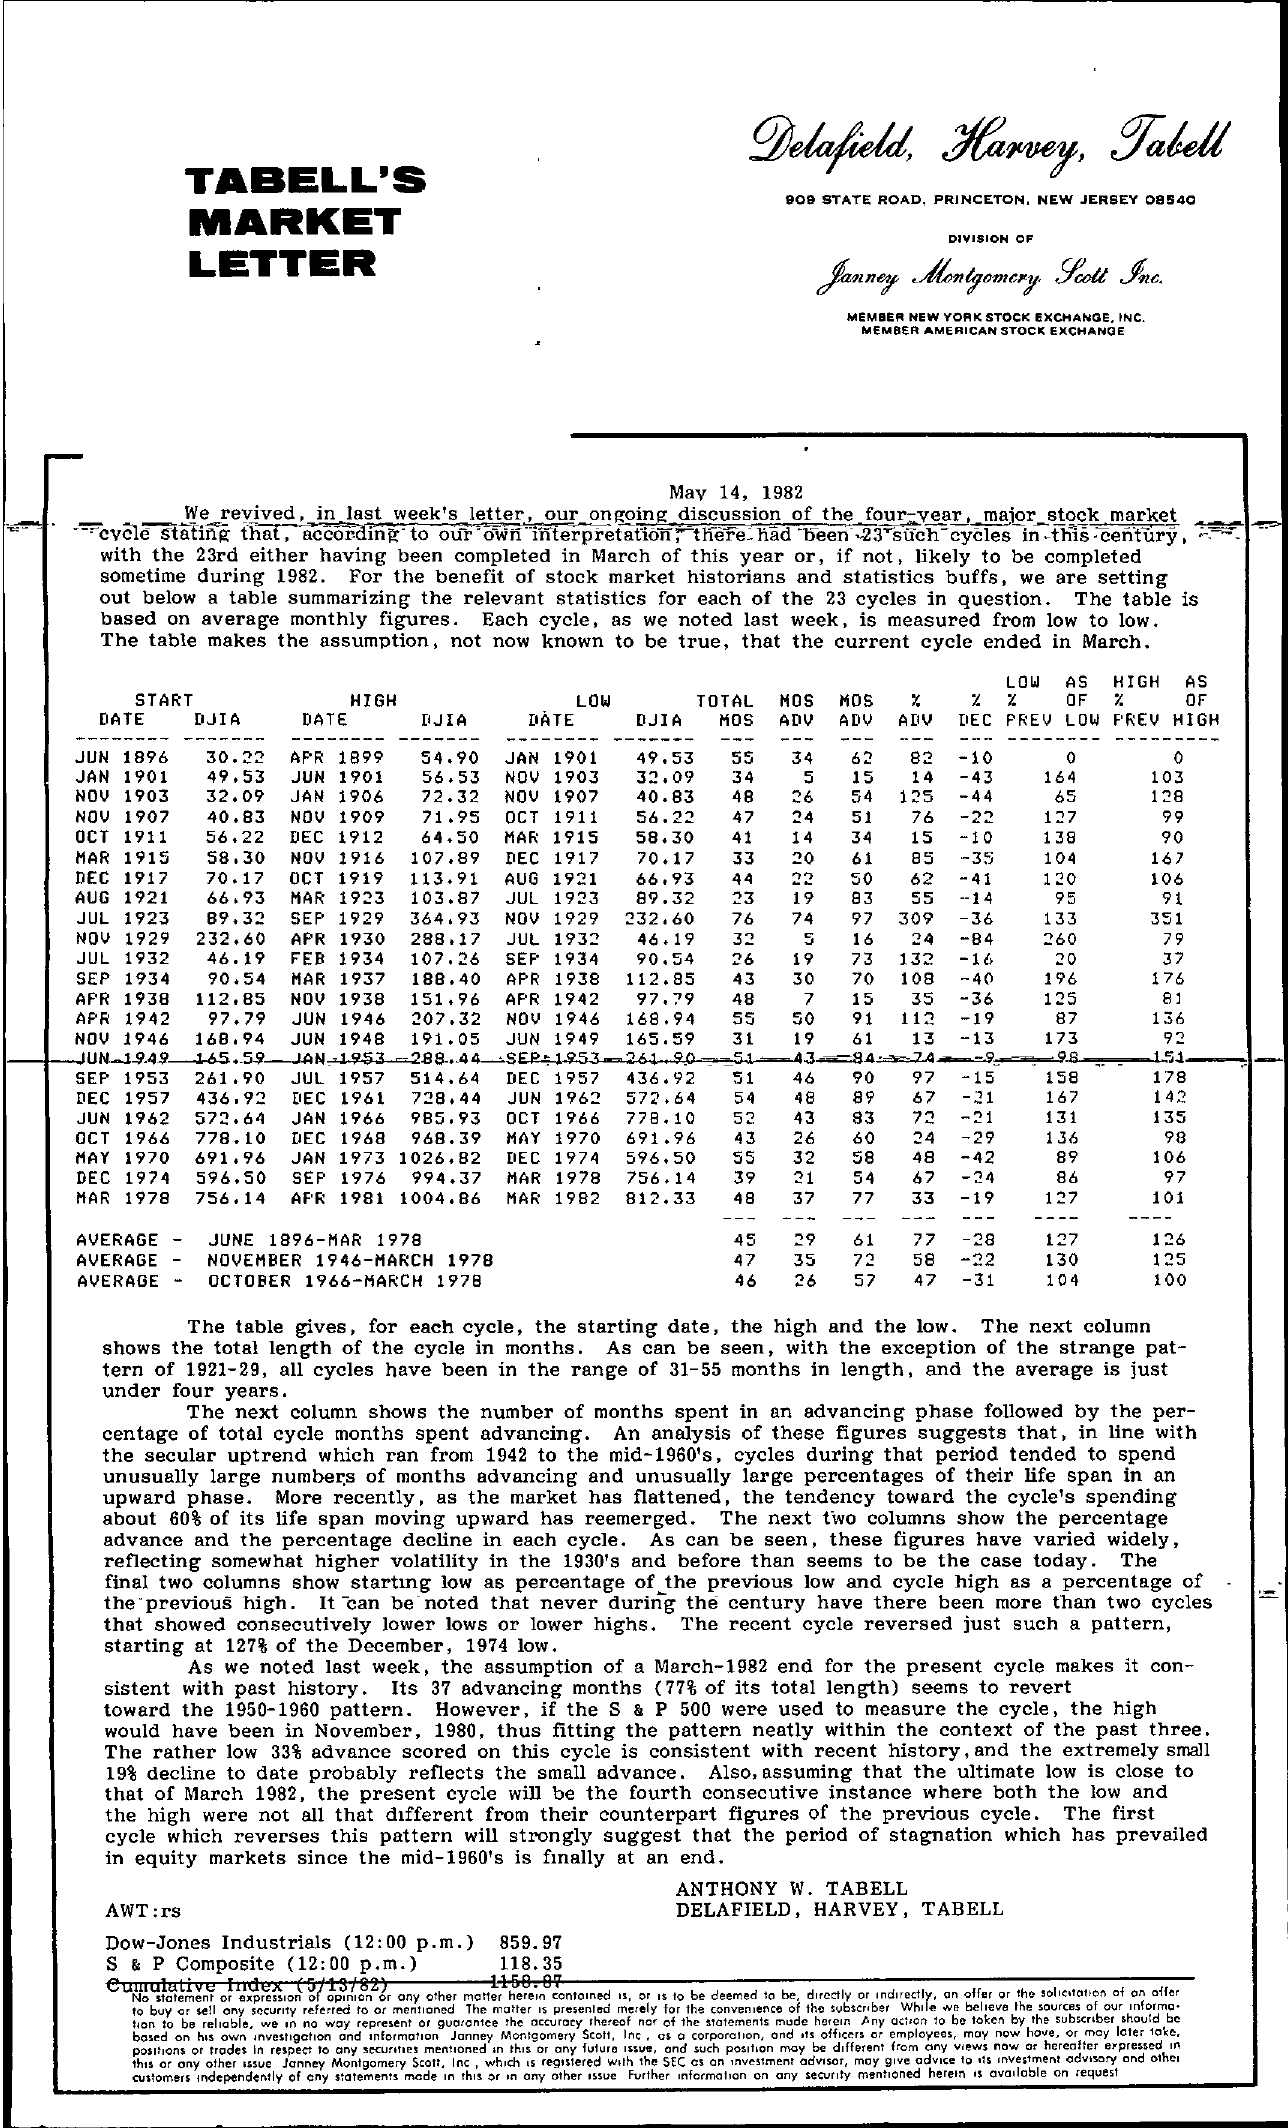 Tabell's Market Letter - May 14, 1982